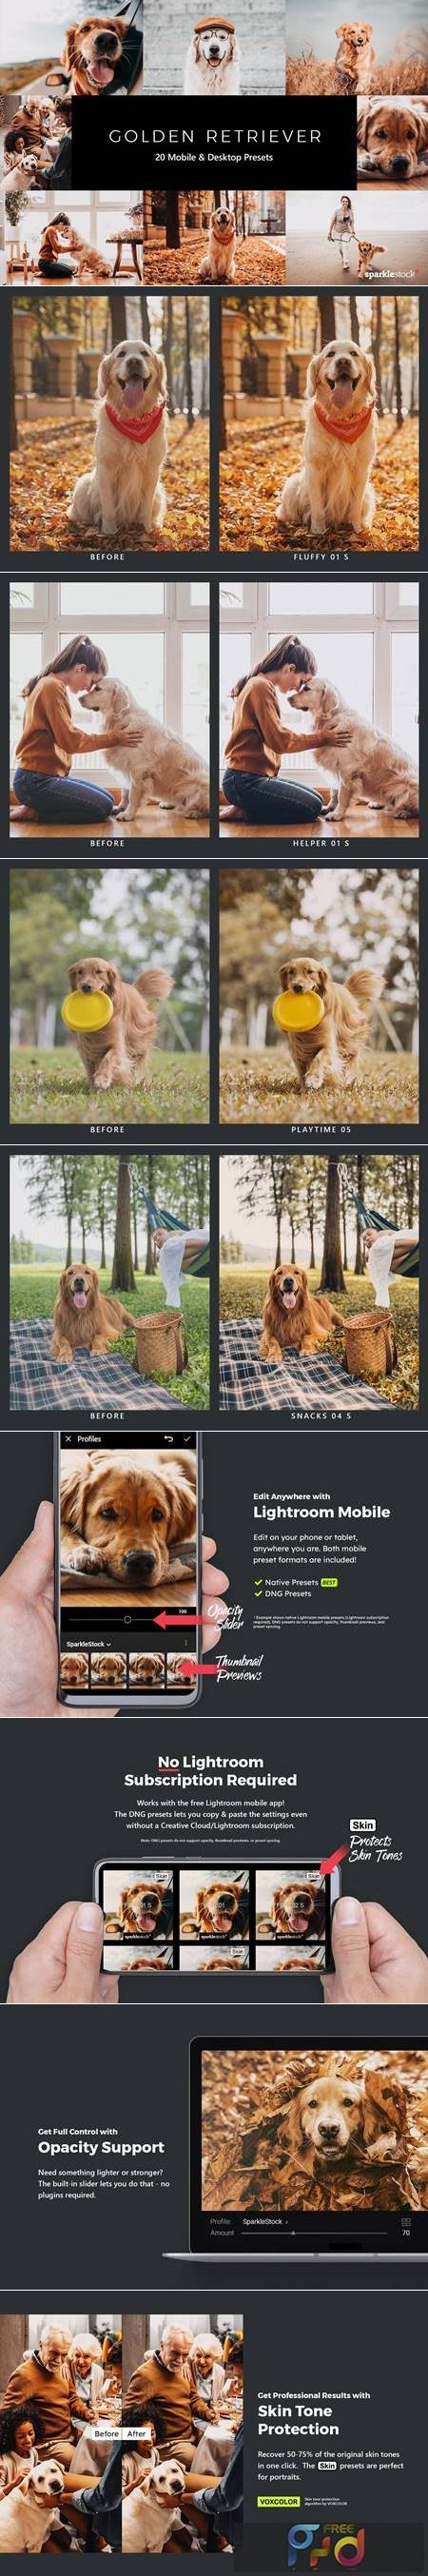 20 Golden Retriever Lightroom Presets & LUTs BD4DXVH 1